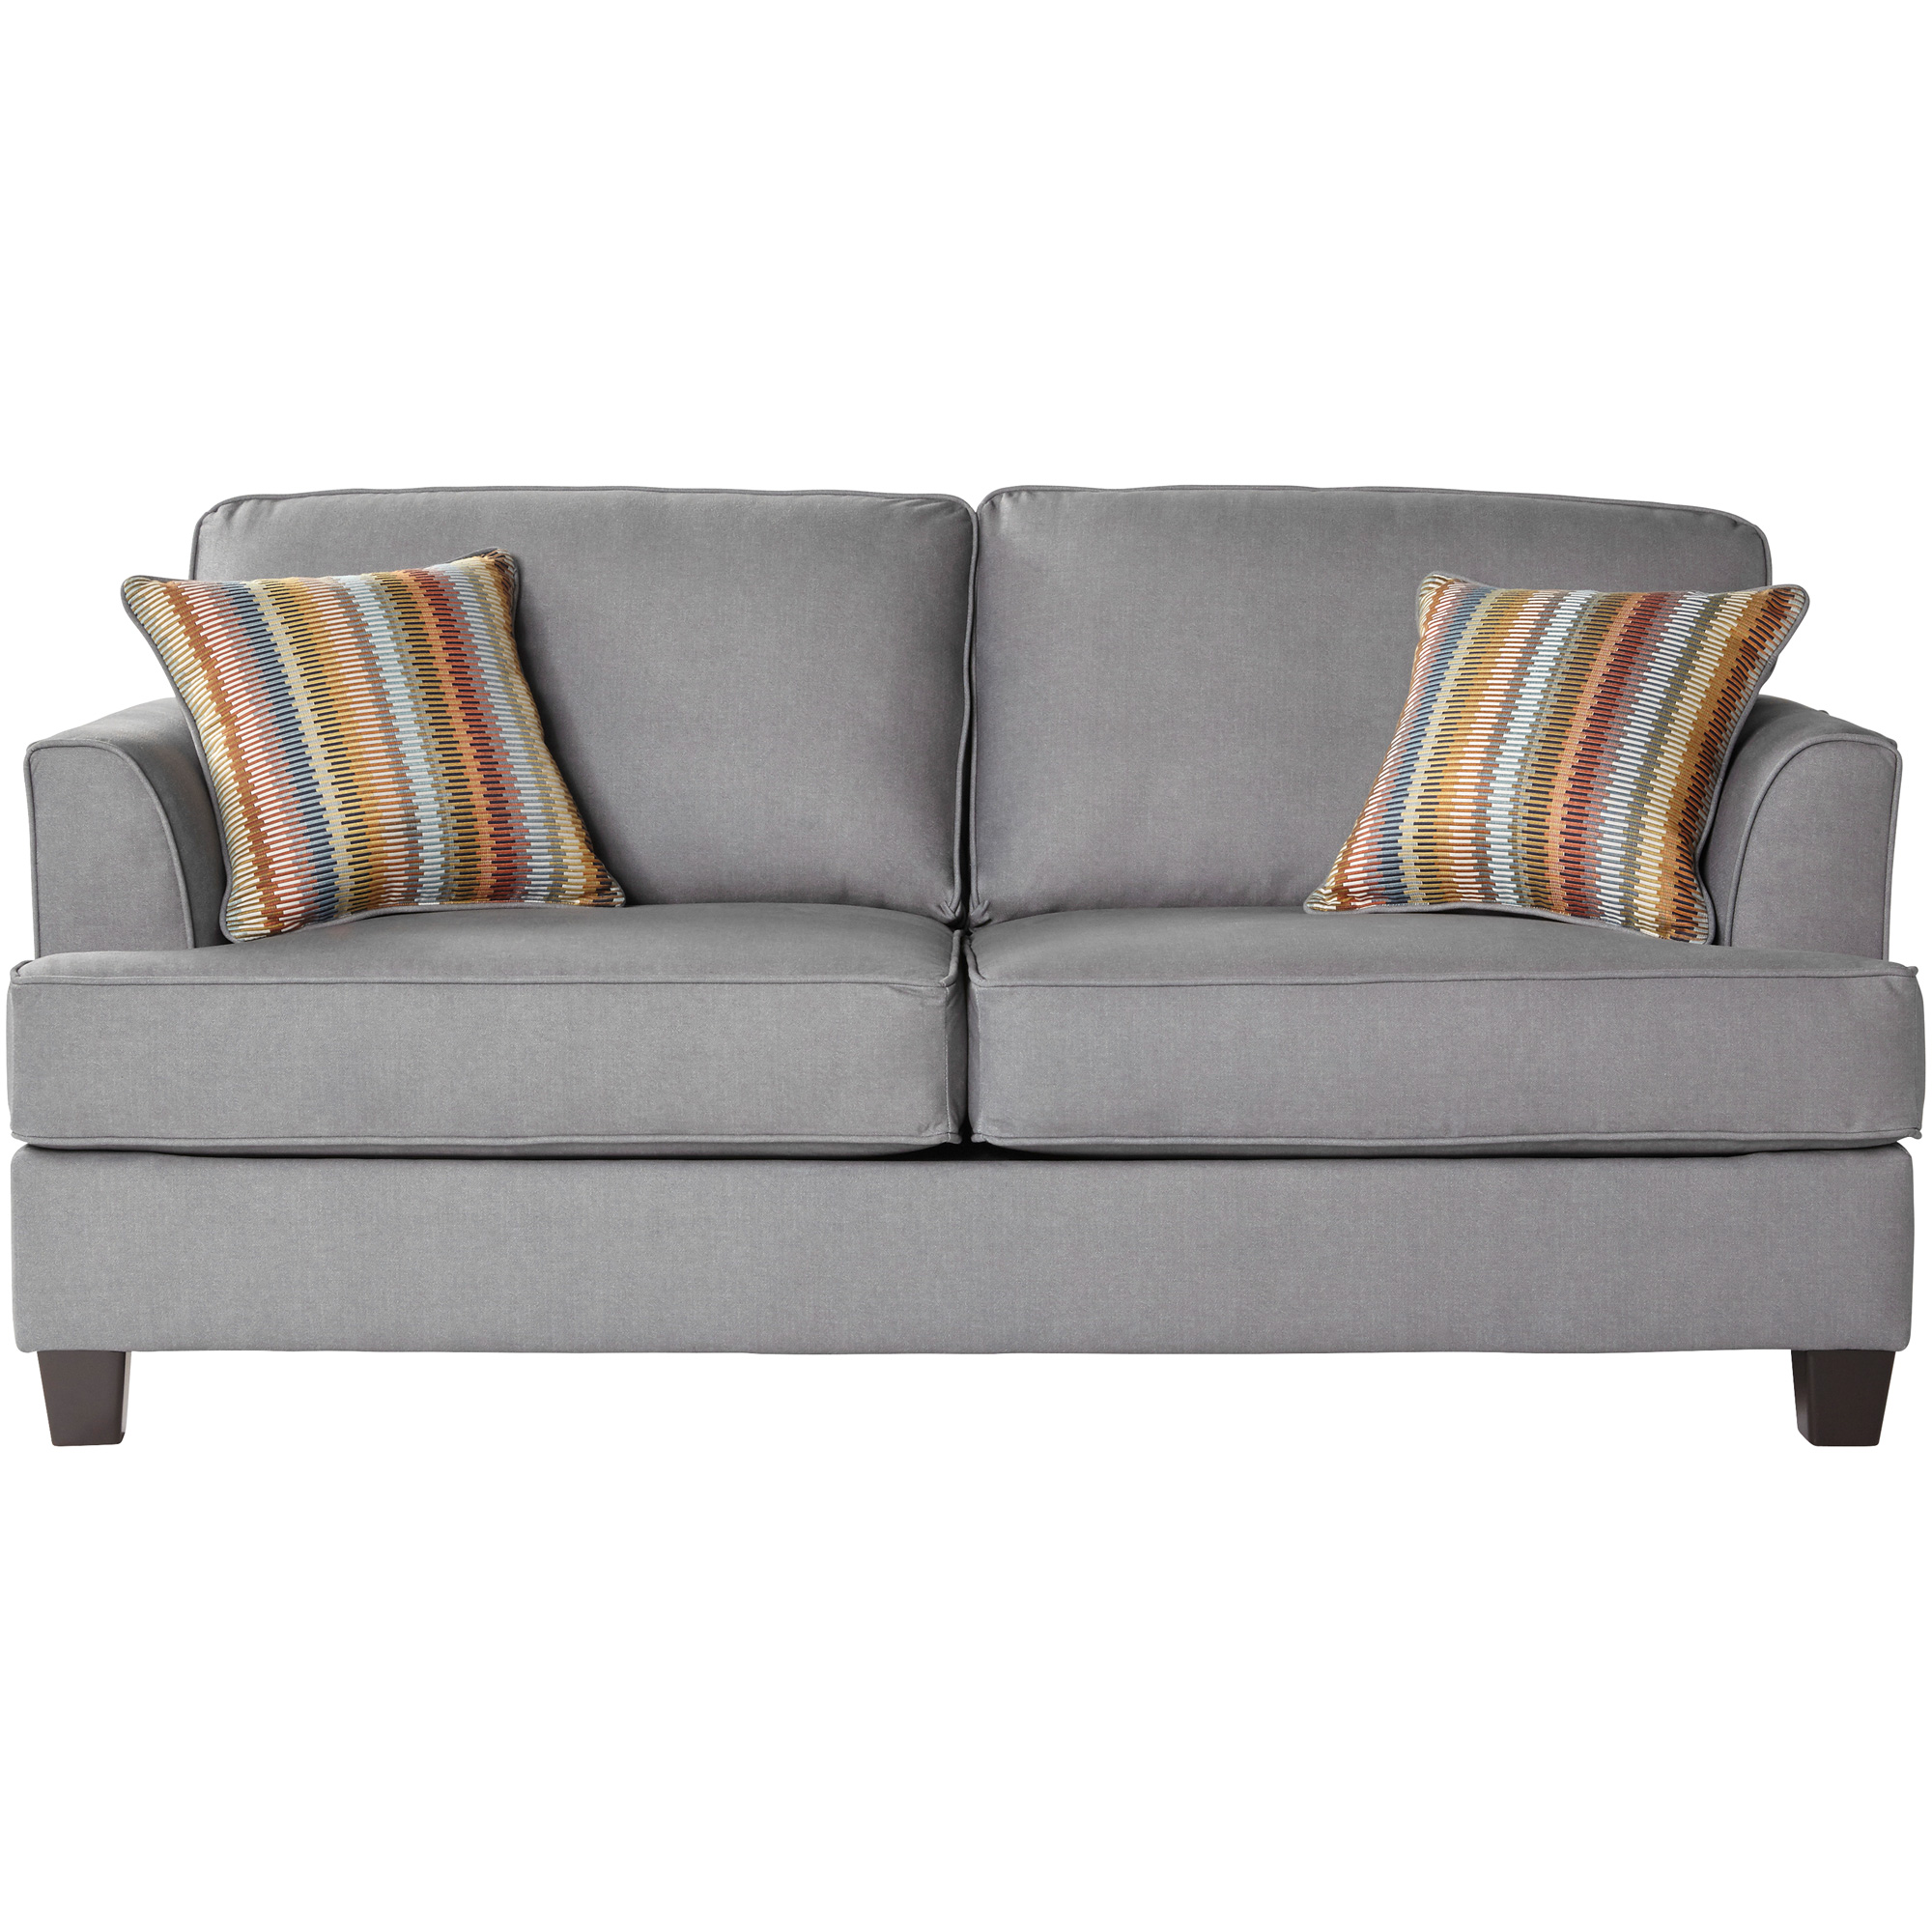 Serta Upholstery By Hughes Furniture | Aloron Beamer Fog Full Sleeper Sofa